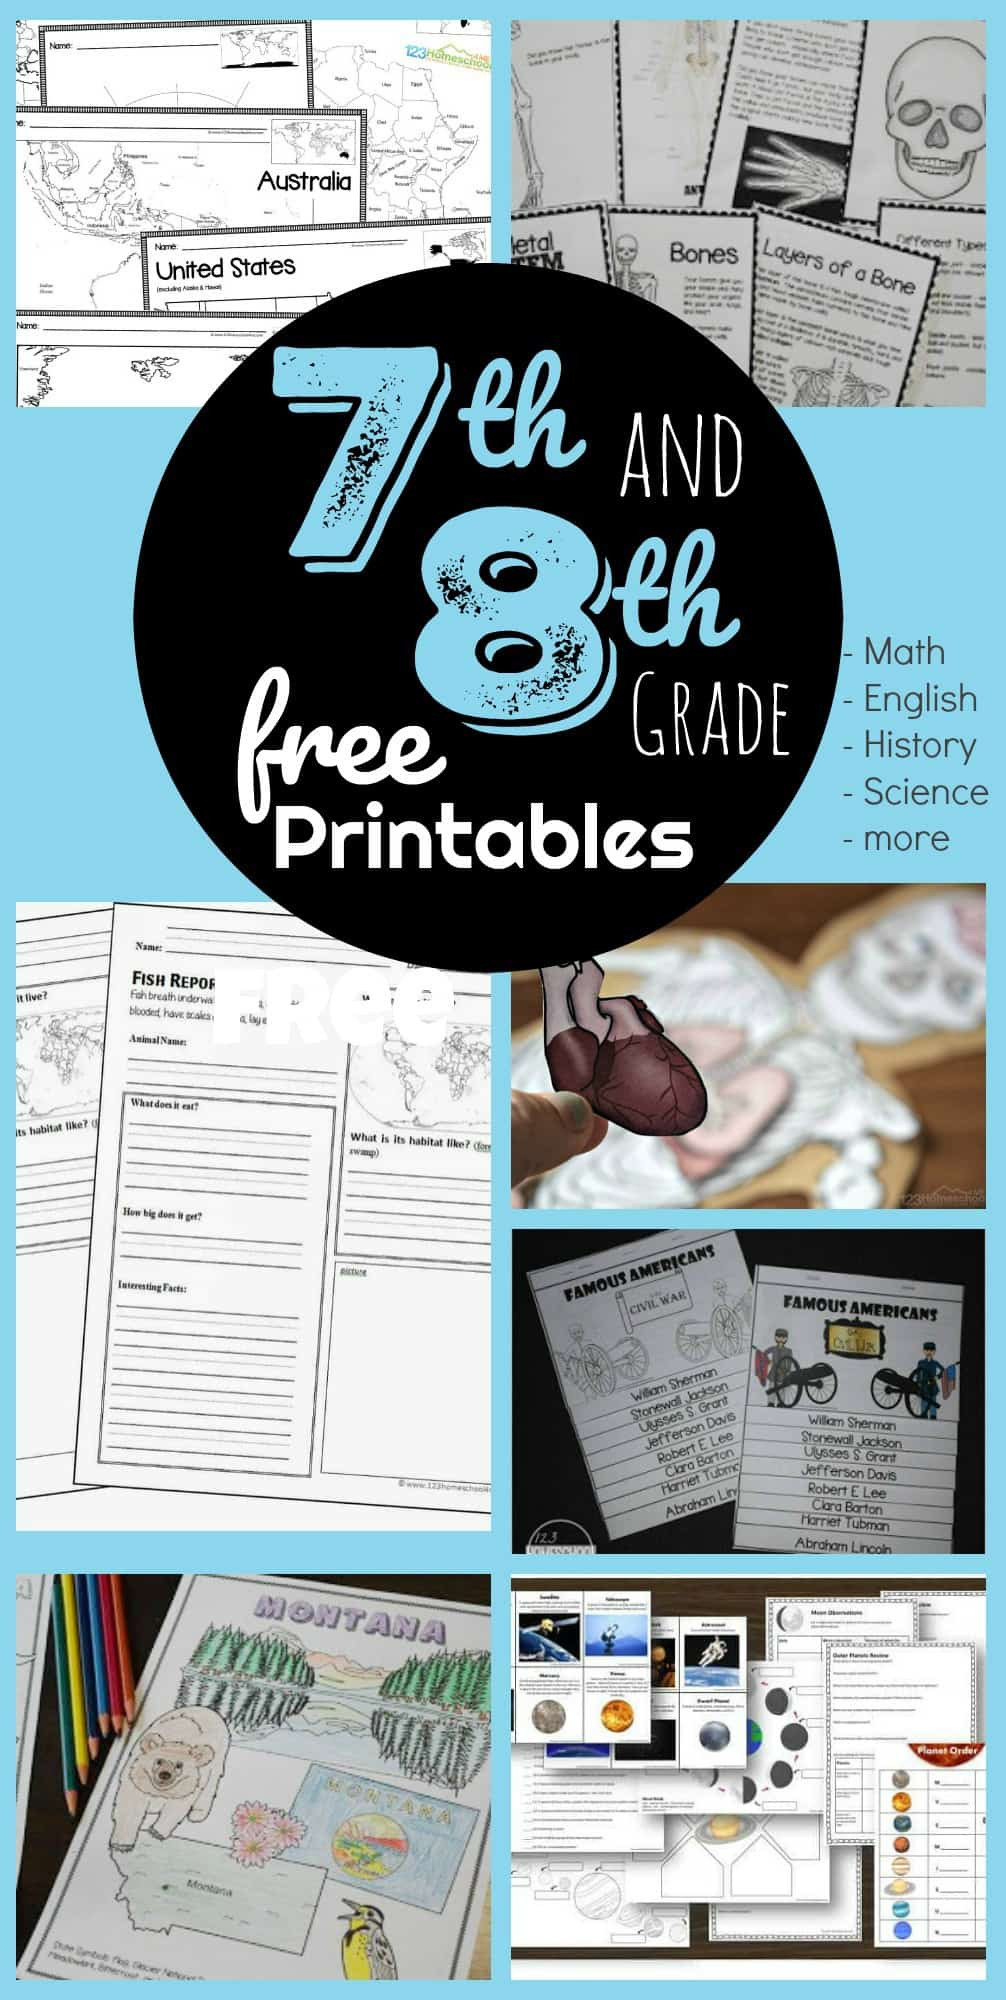 Reading Comprehension 7th Grade Worksheet Free 7th & 8th Grade Worksheets